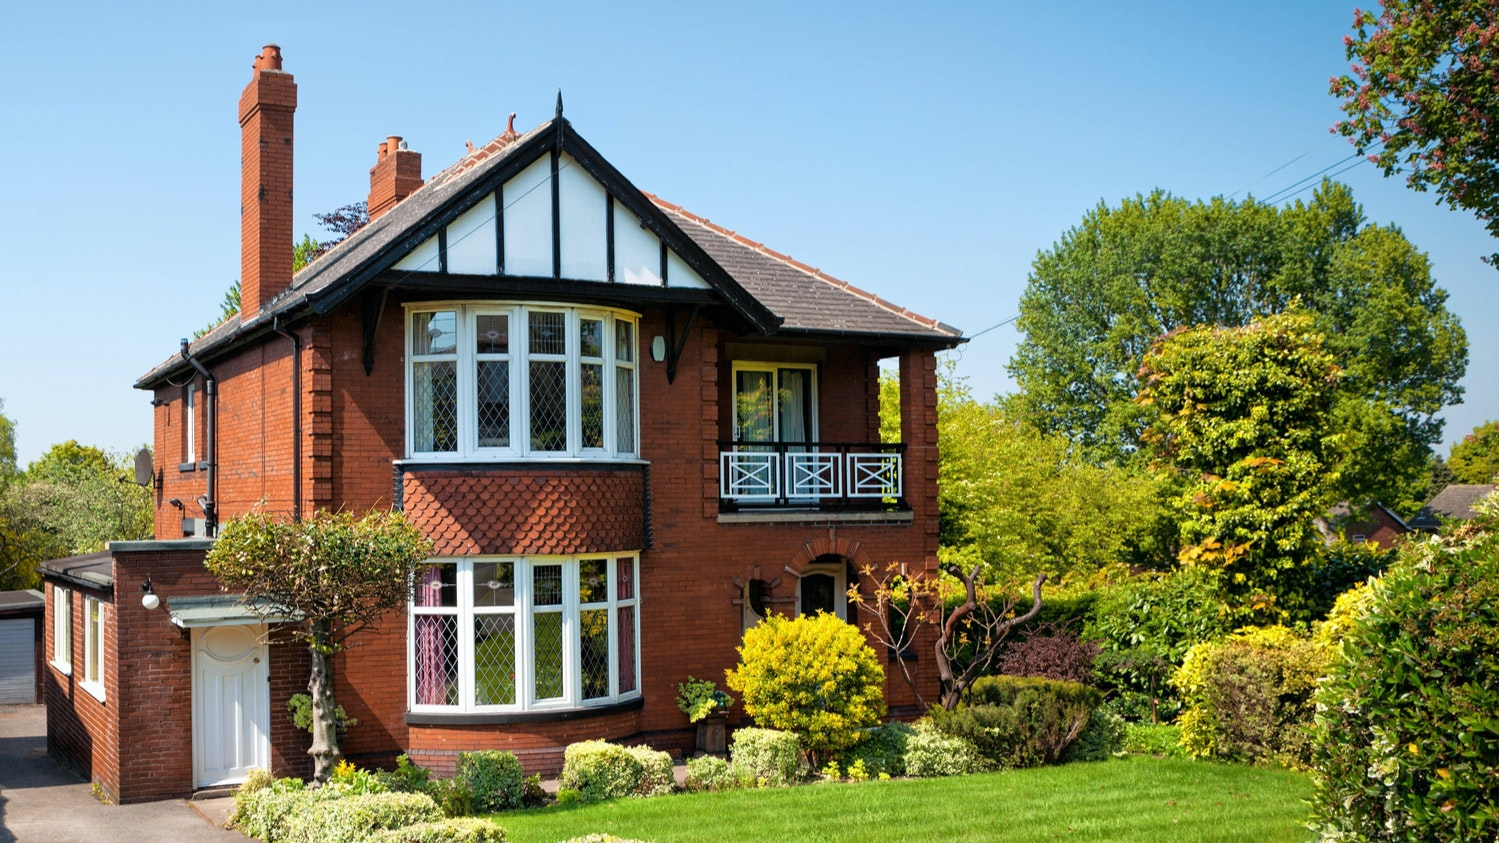 Large red brick house with garden